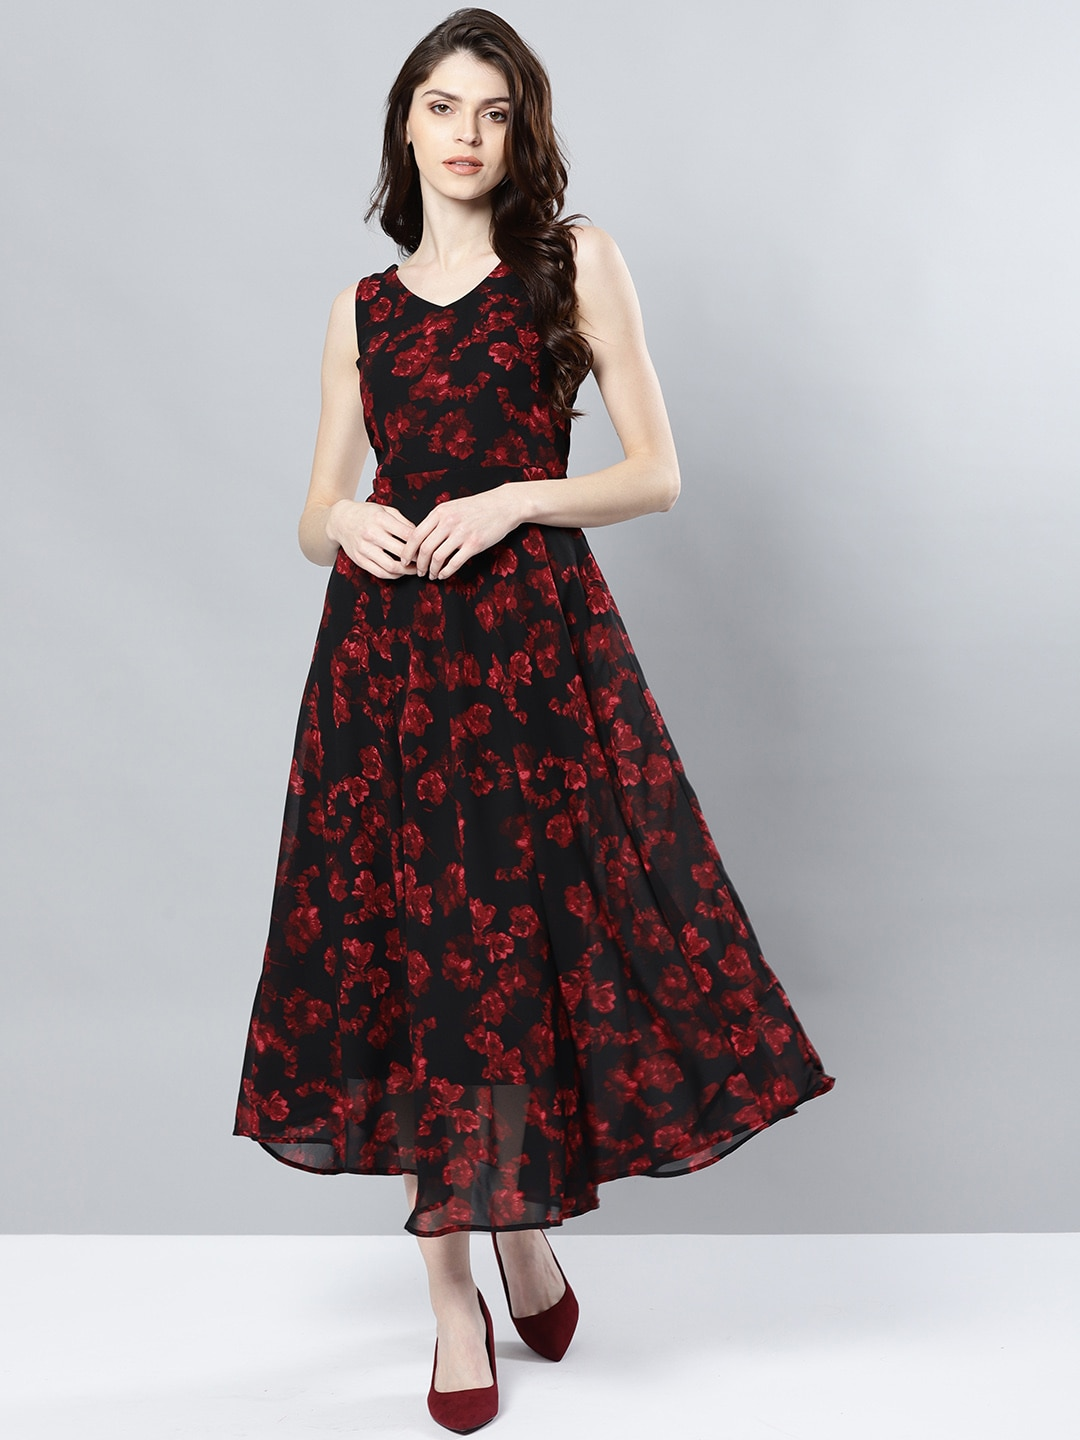 536ab0df9c1a Dresses - Buy Western Dresses for Women   Girls